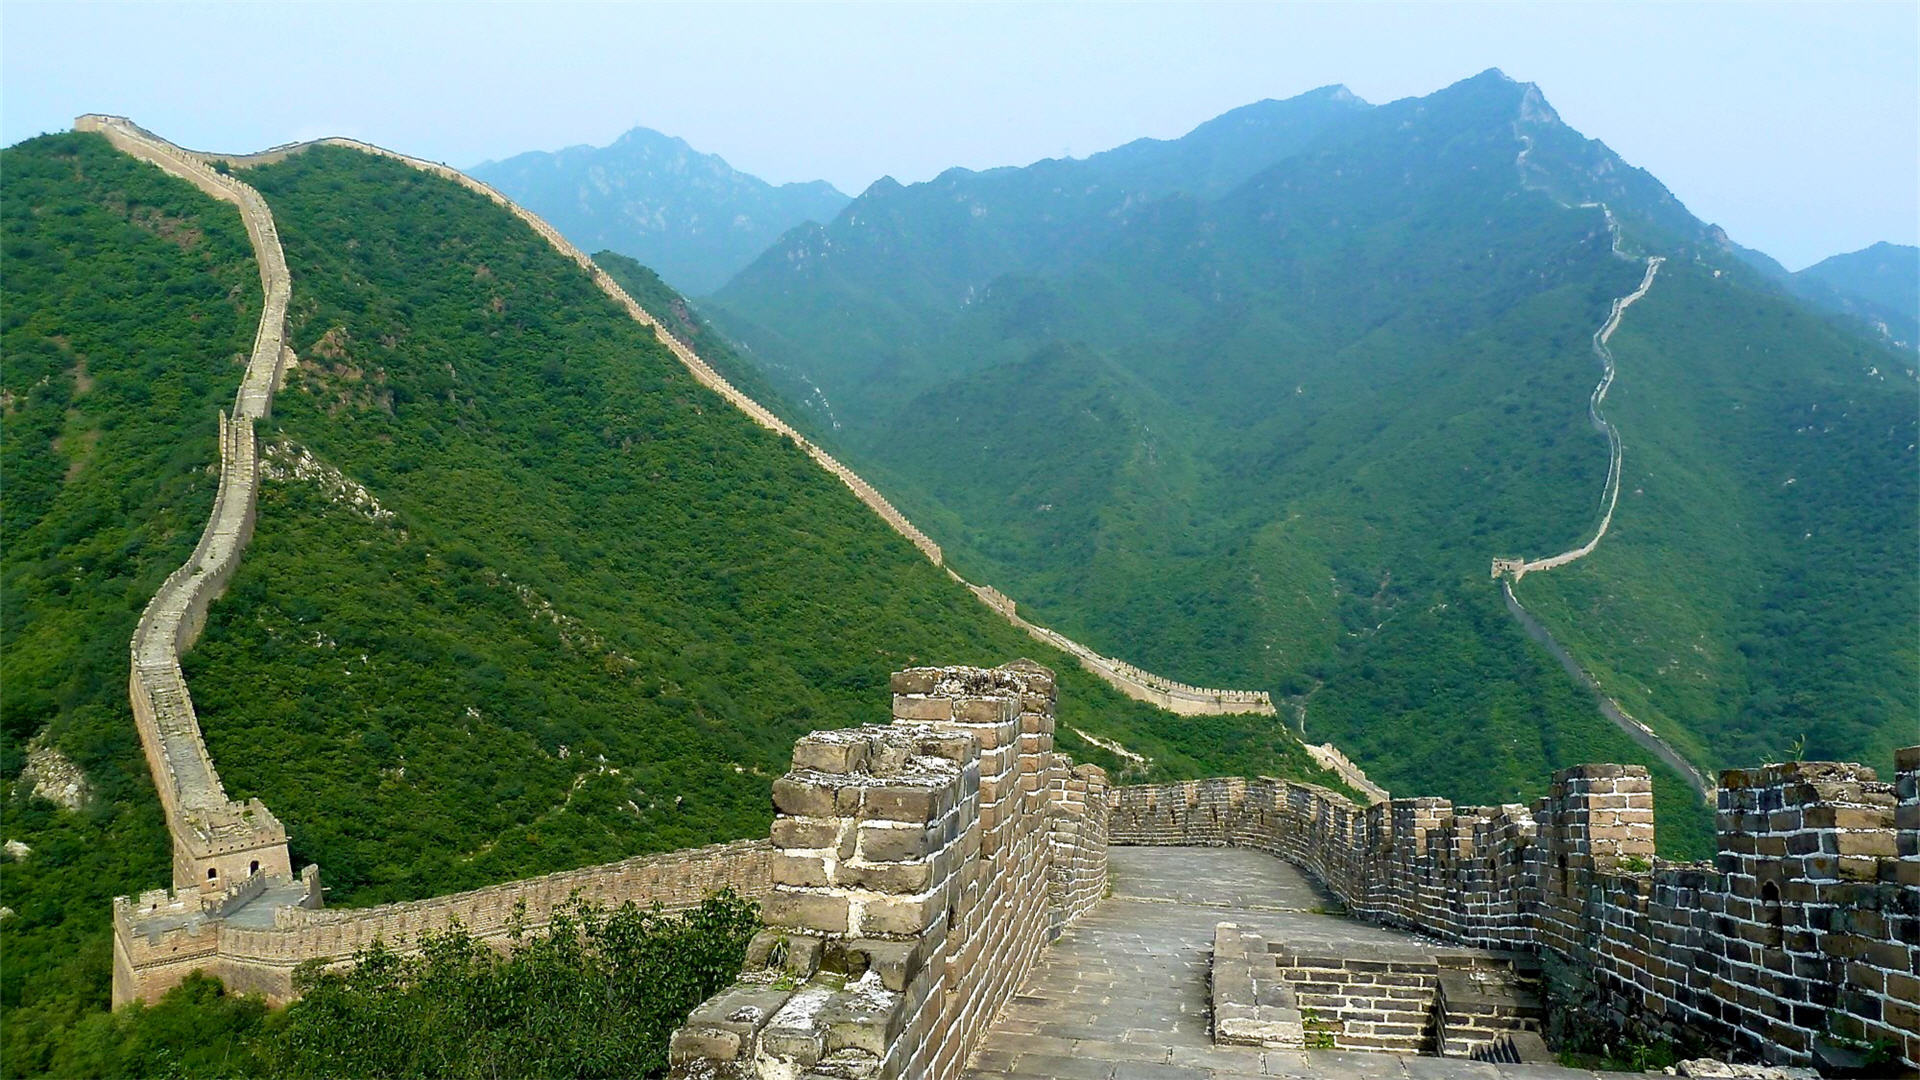 Great Wall of China Original Wallpaper   Travel HD Wallpapers 1920x1080